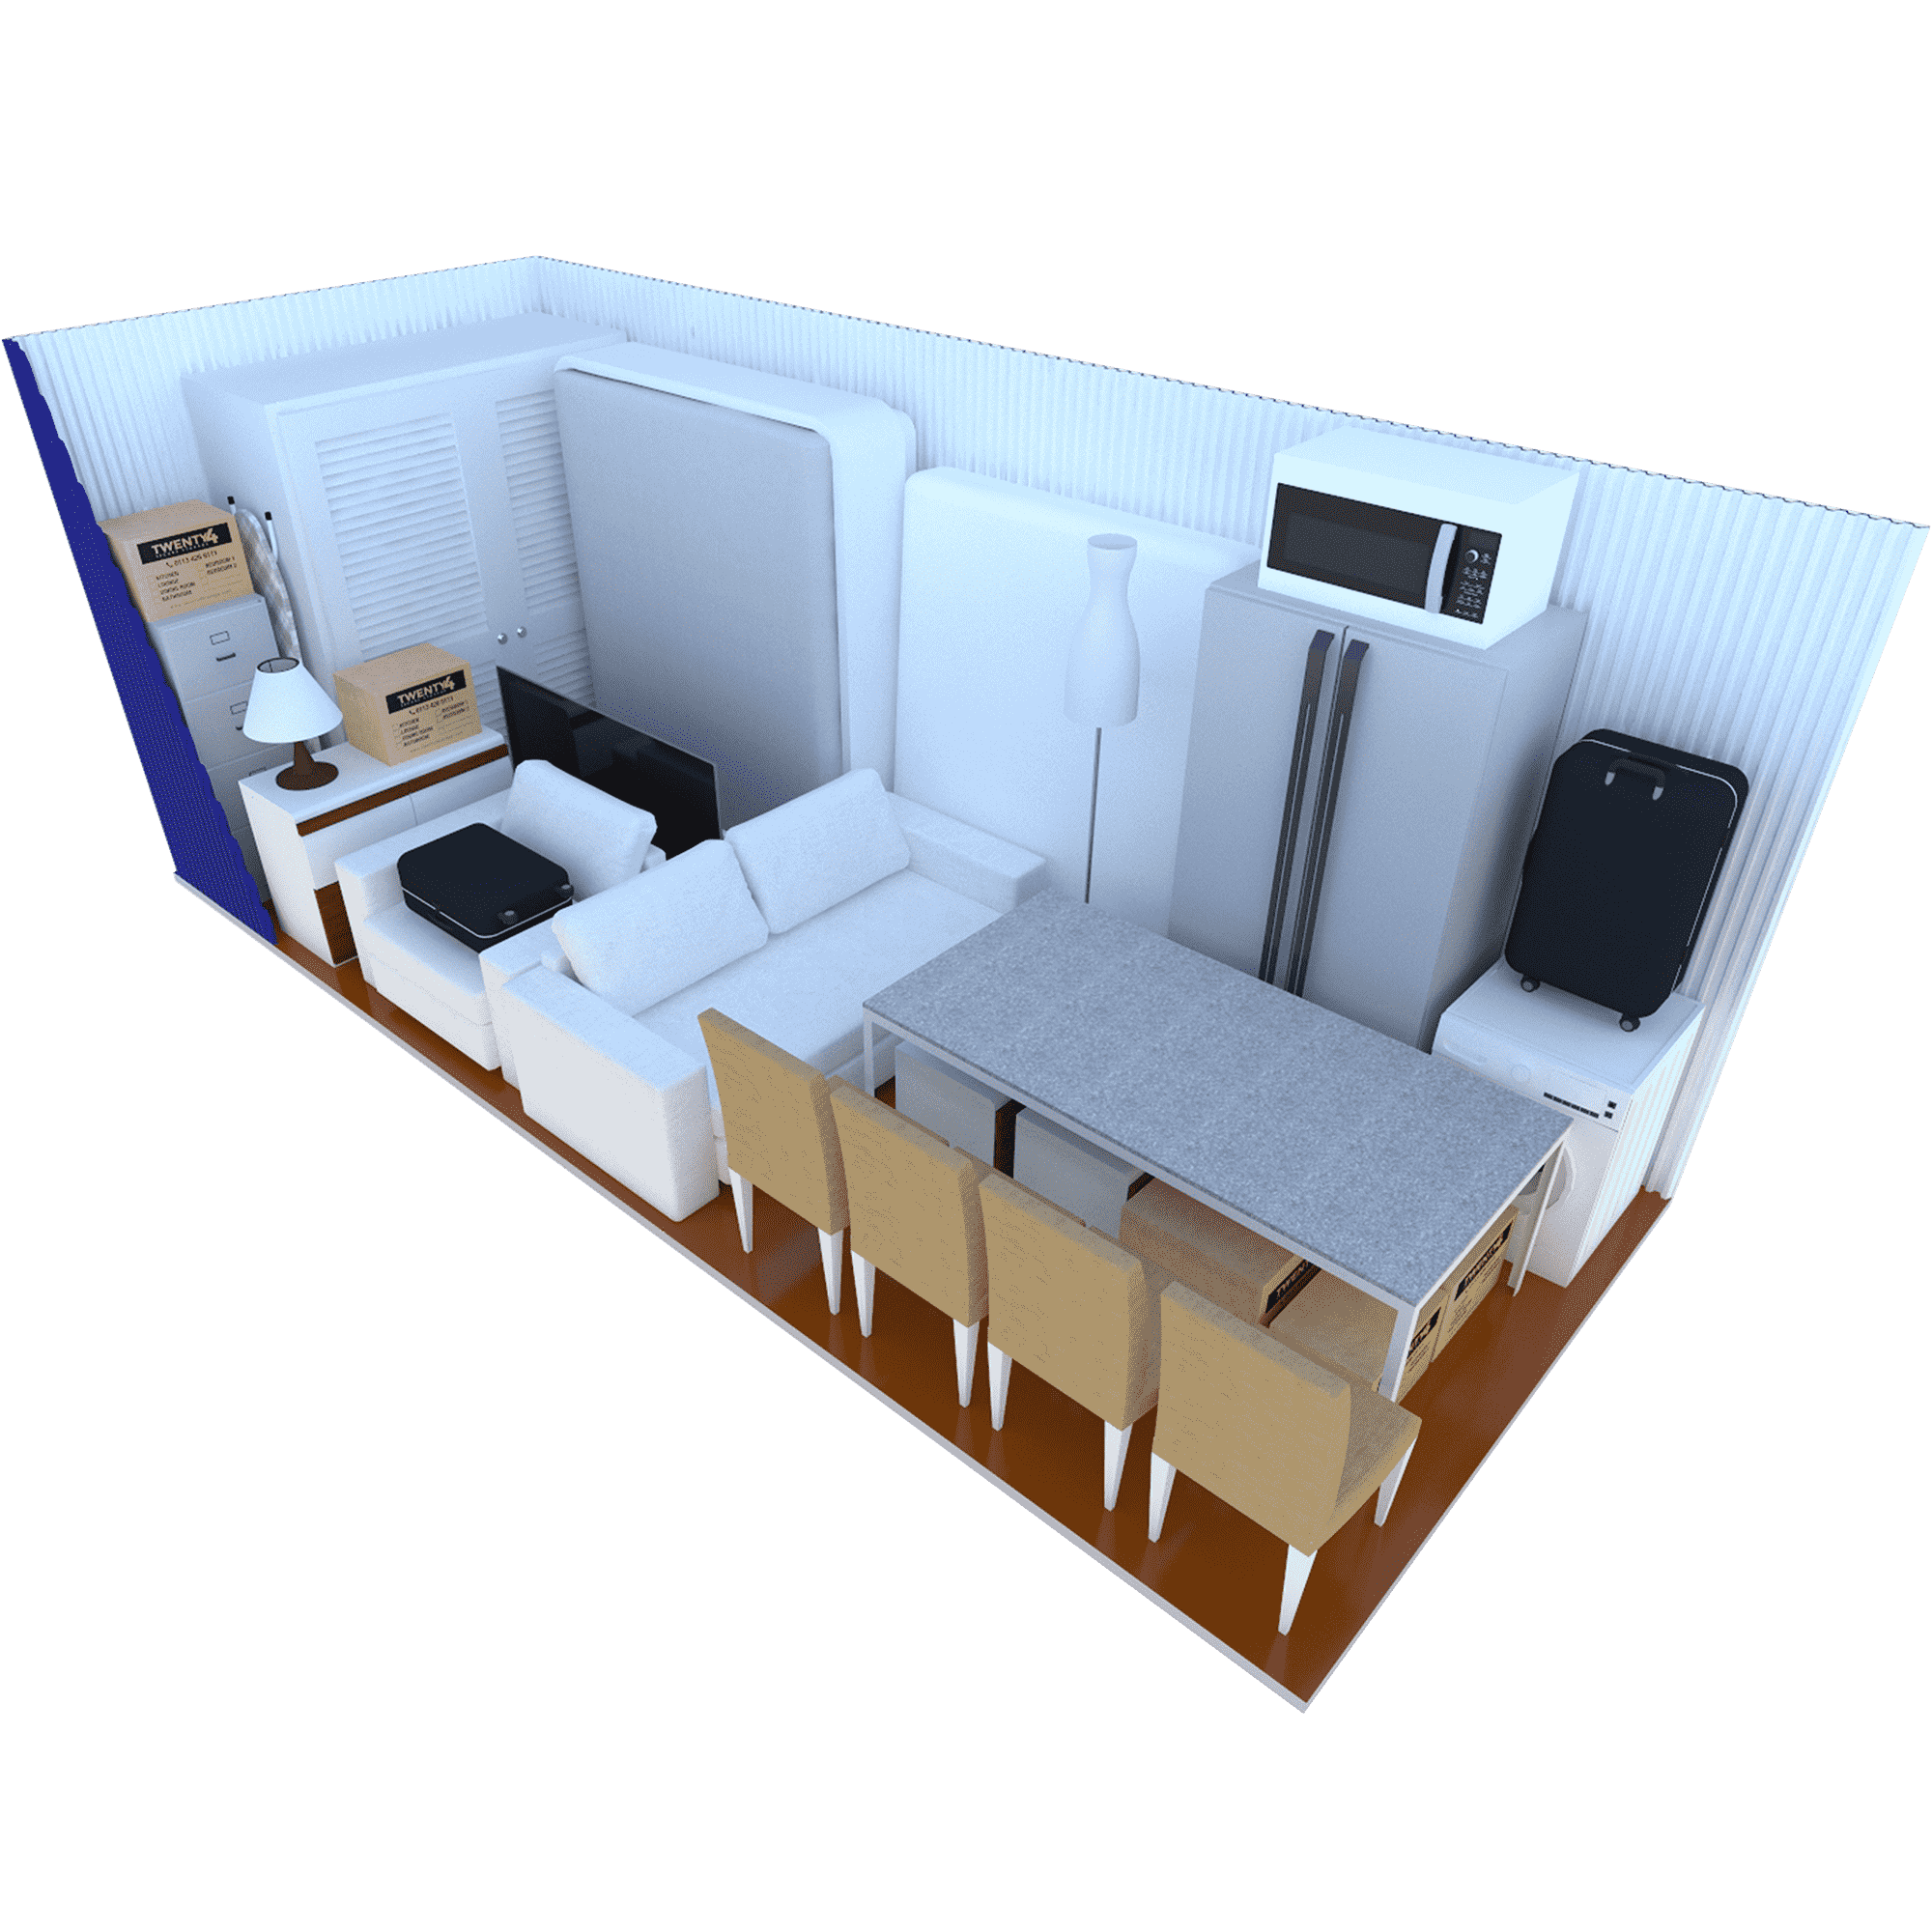 150 Sq ft Container Hire